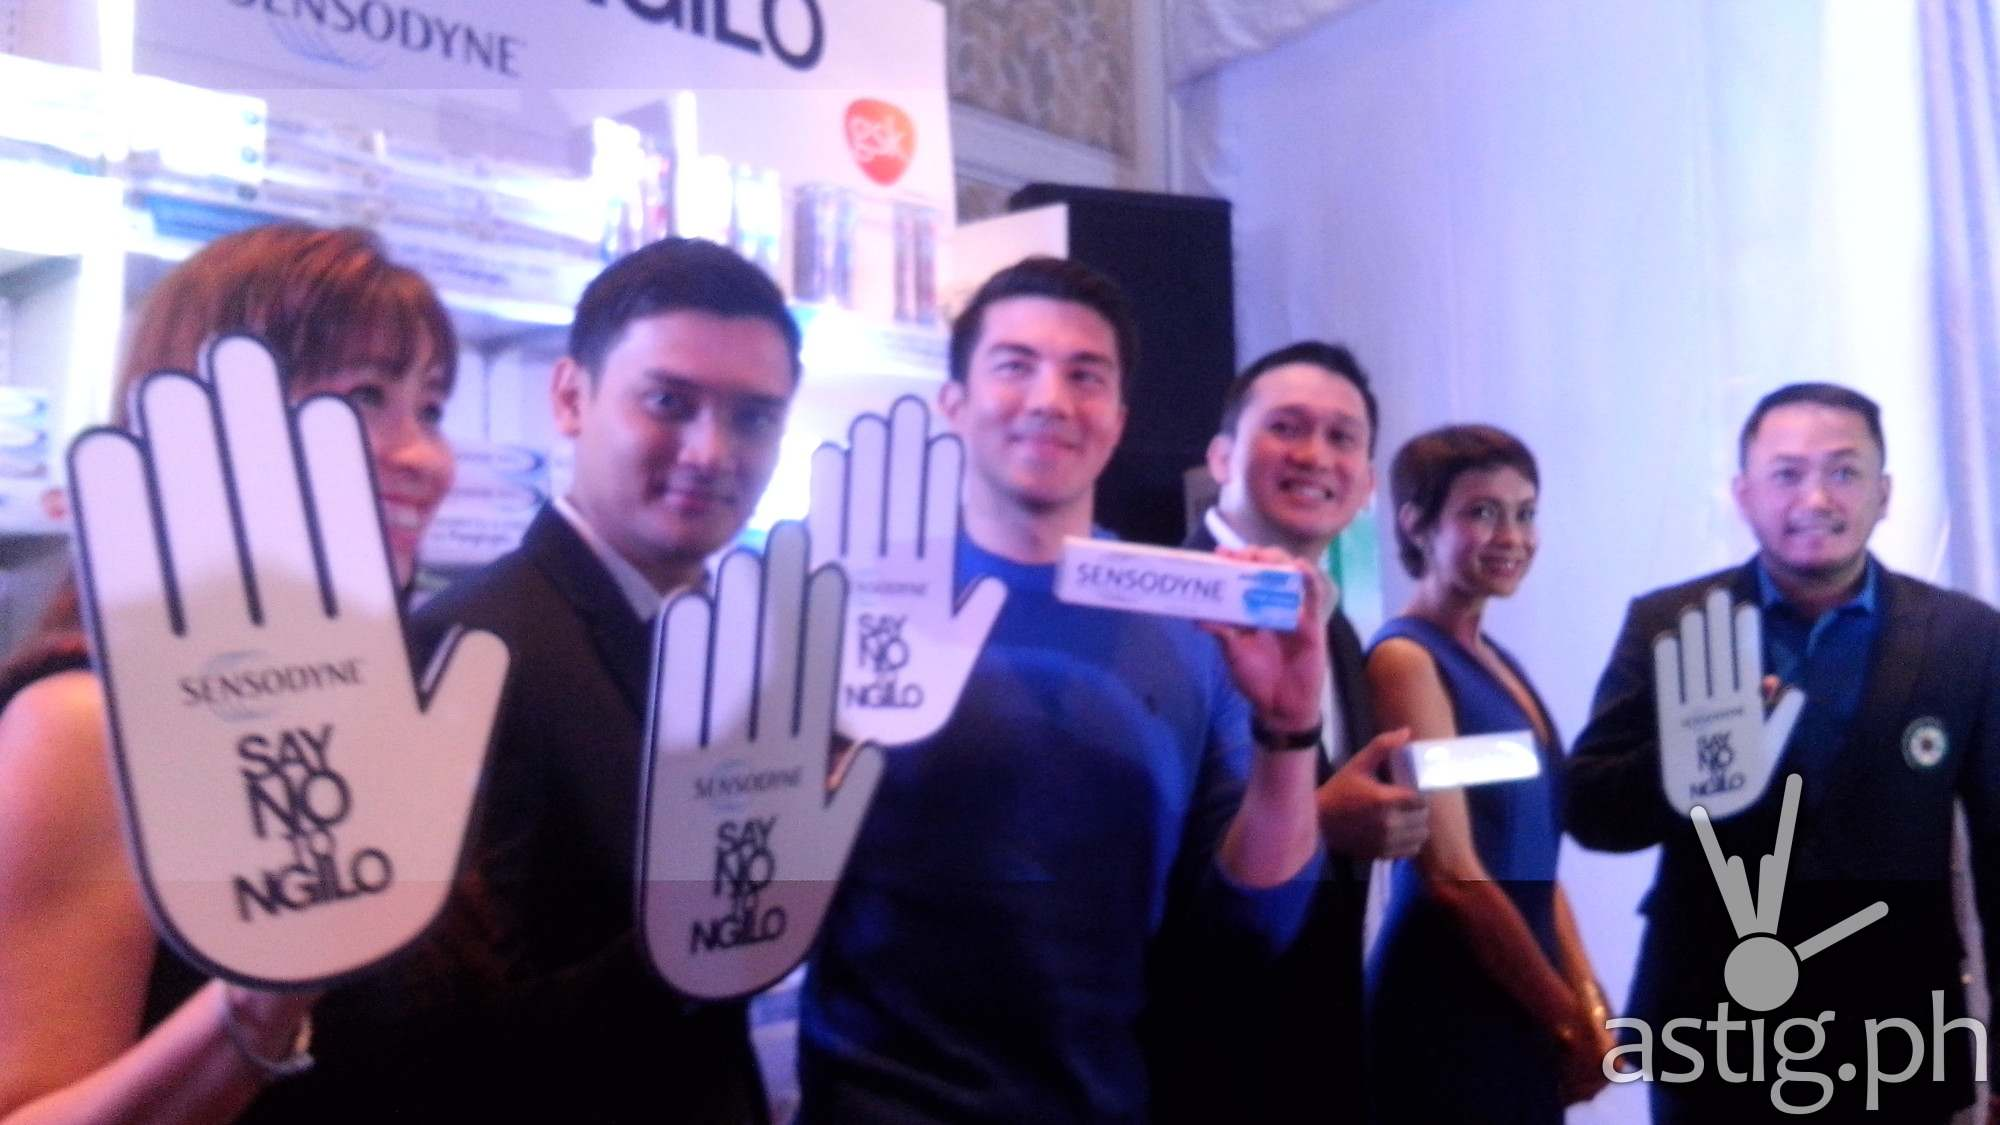 Luis Manzano and Sensodyne